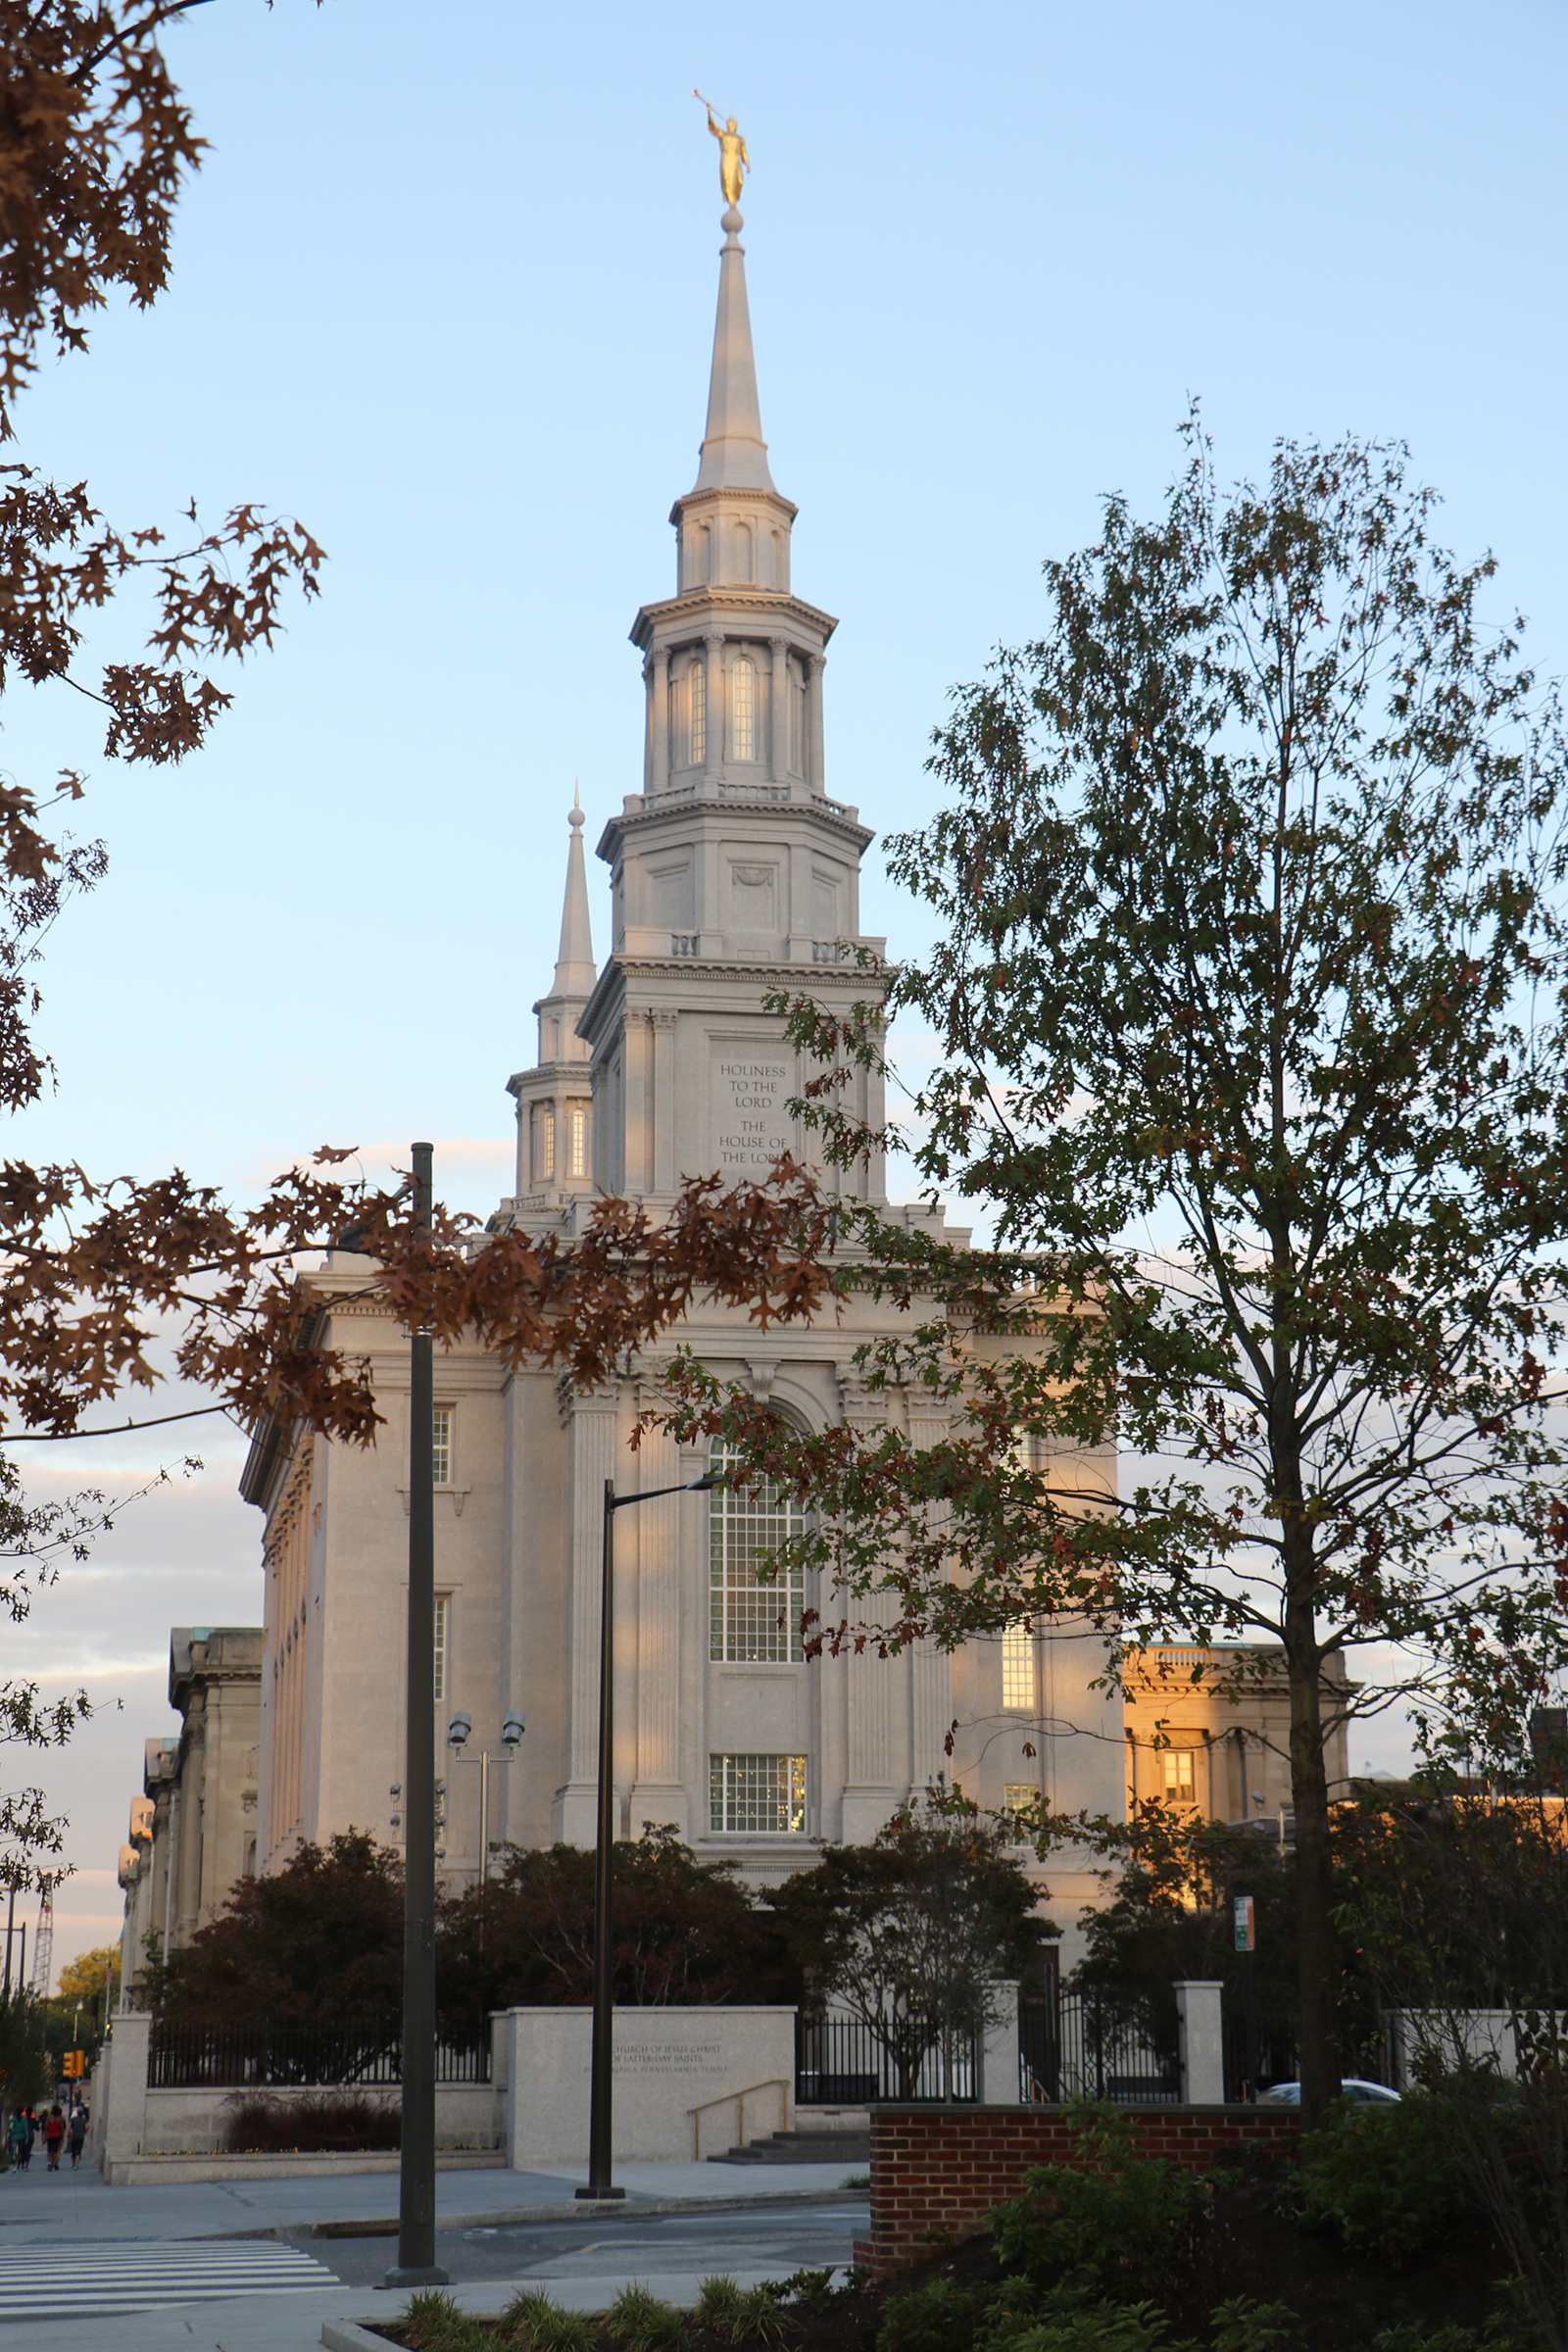 President Henry B. Eyring, first counselor in the First Presidency of The Church of Jesus Christ of Latter-day Saints, dedicated the Philadelphia Pennsylvania Temple on Sunday, Sept. 18, 2016.